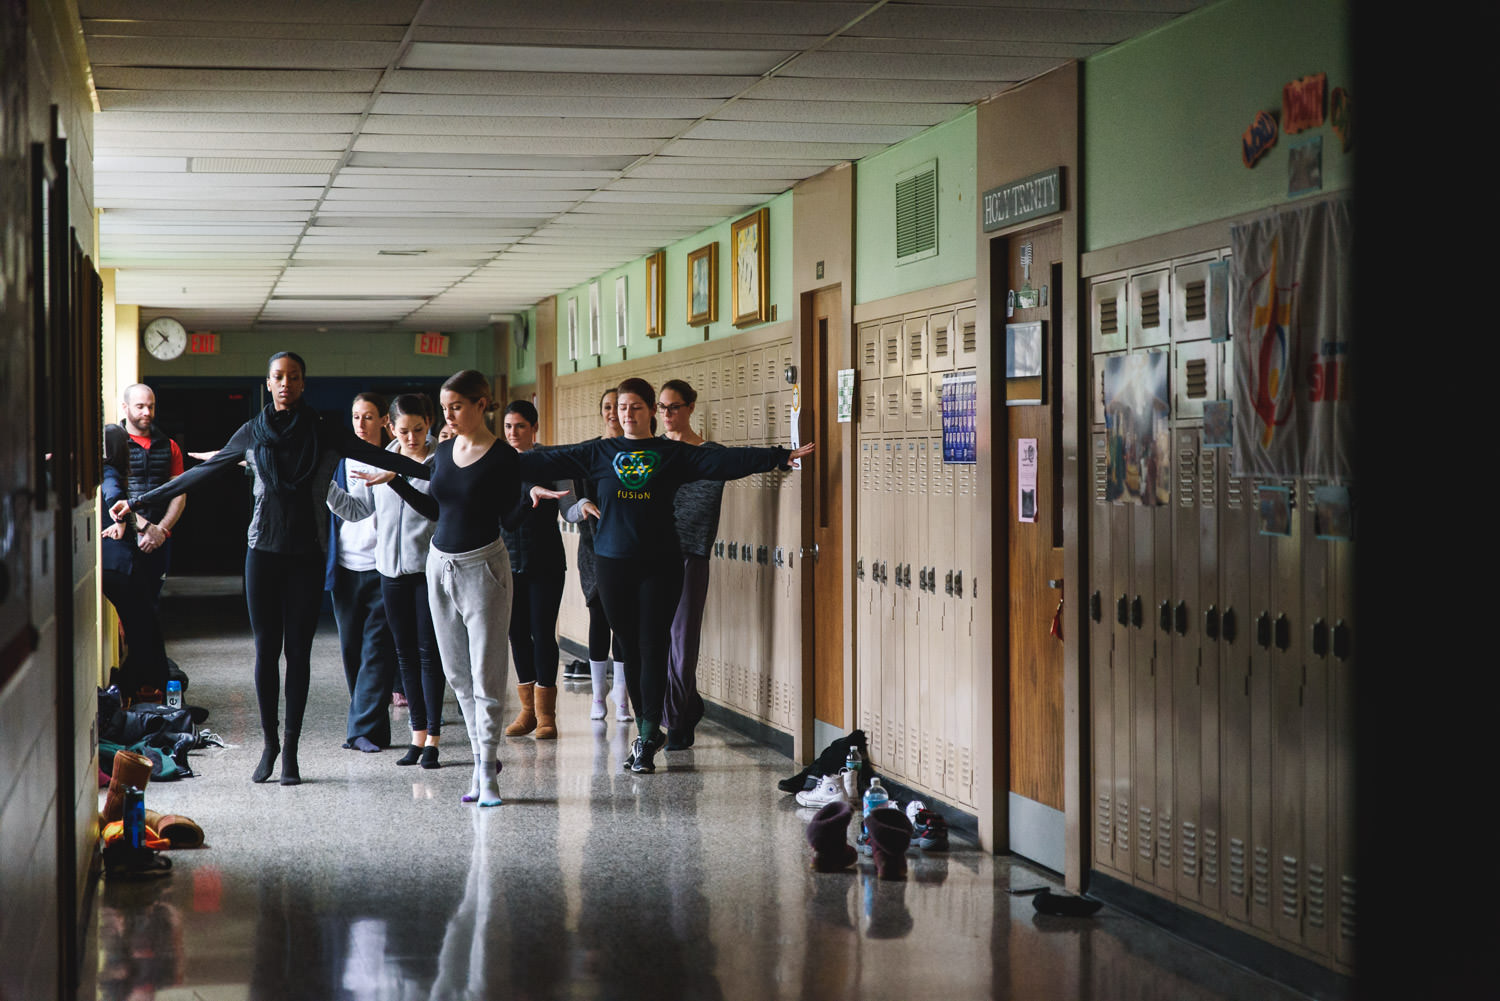 Dancers rehearsing in the hallway at Trinity High School in Hicksville.